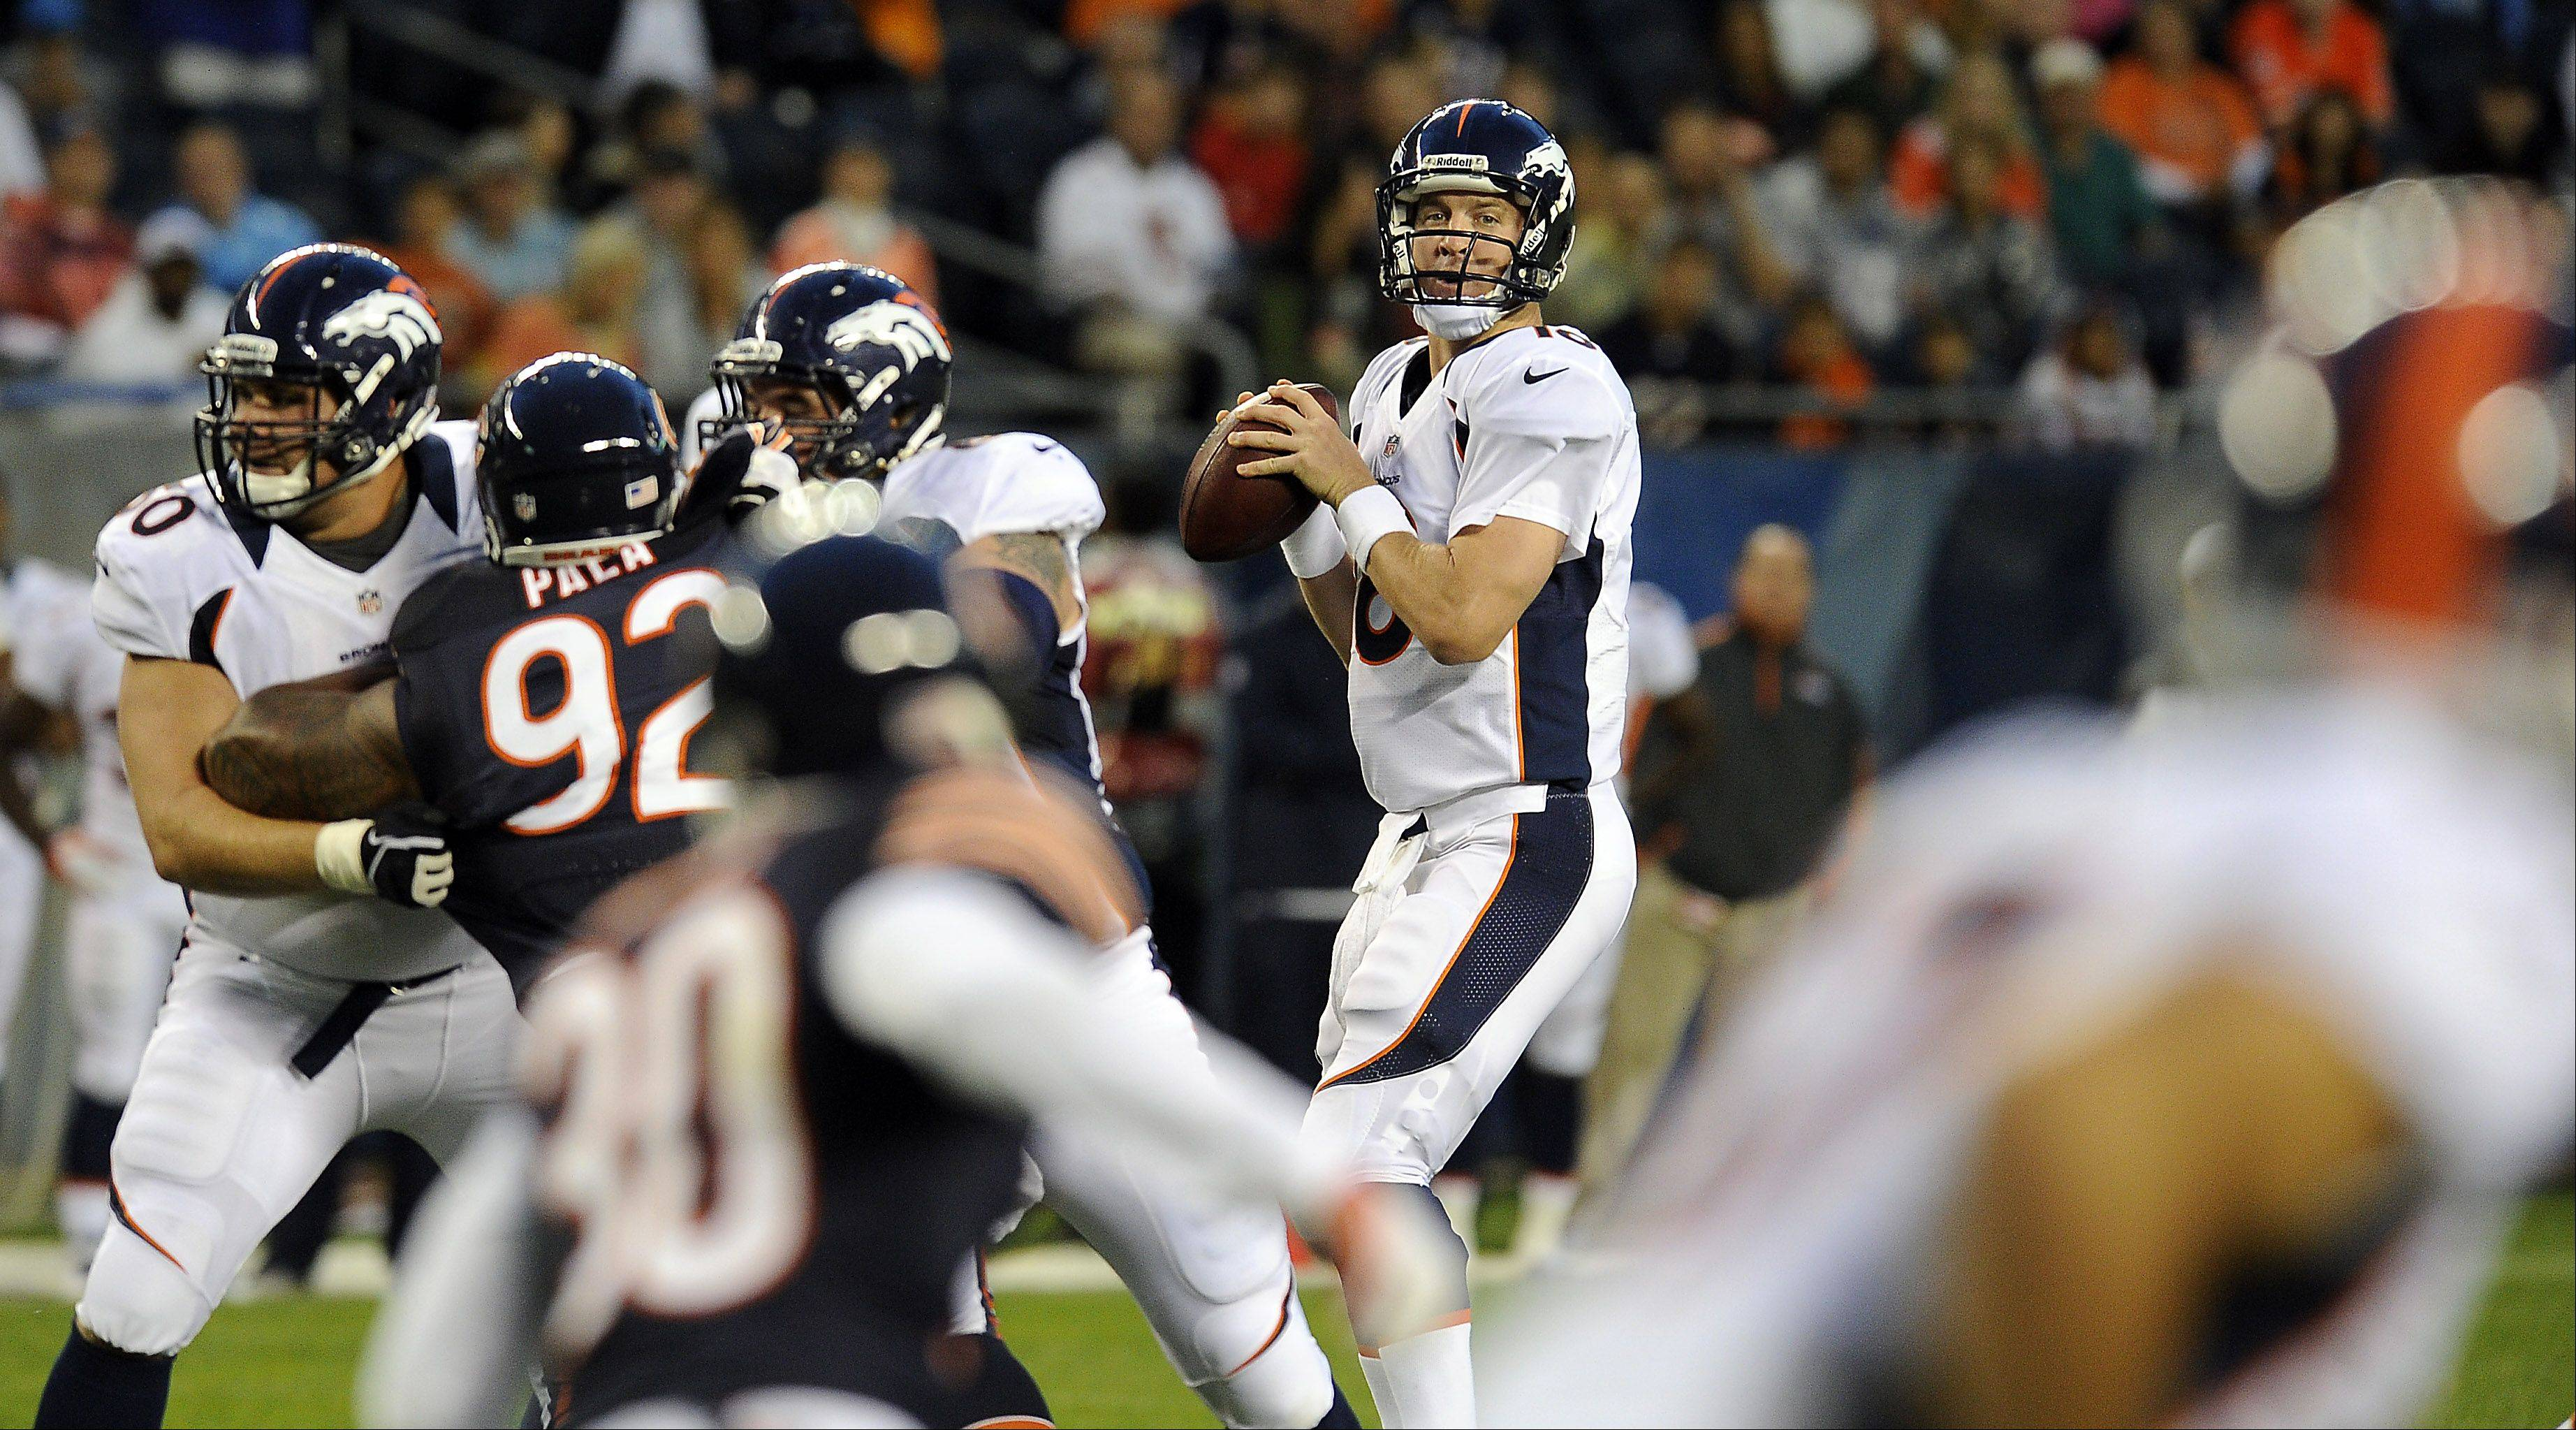 Denver Broncos quarterback Peyton Manning looks to pass during the first quarter.